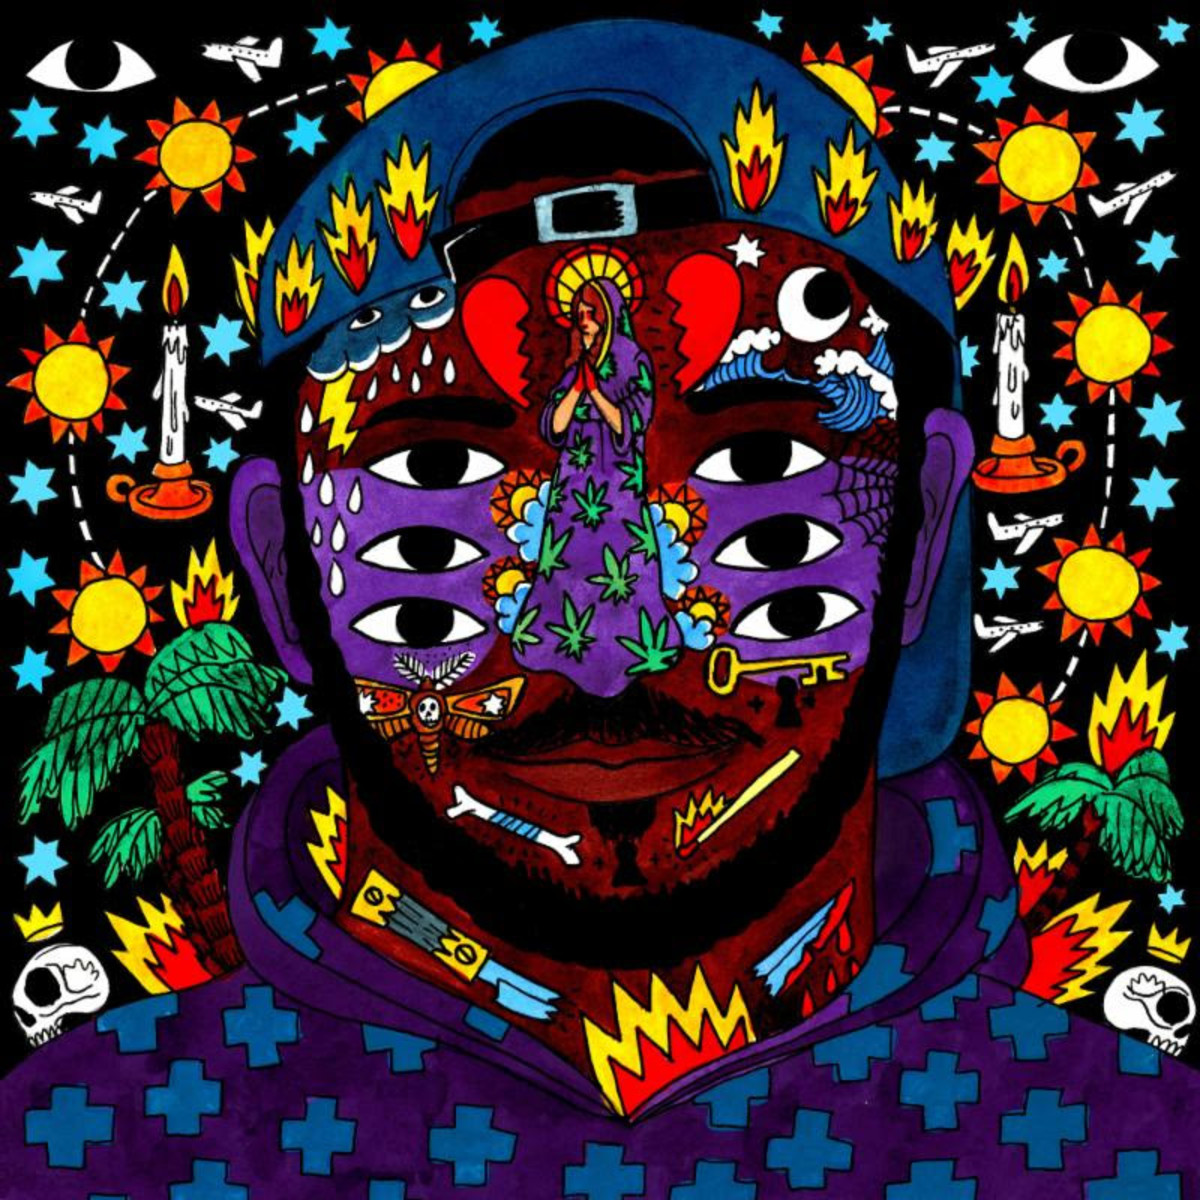 kaytranada-99-official.jpg